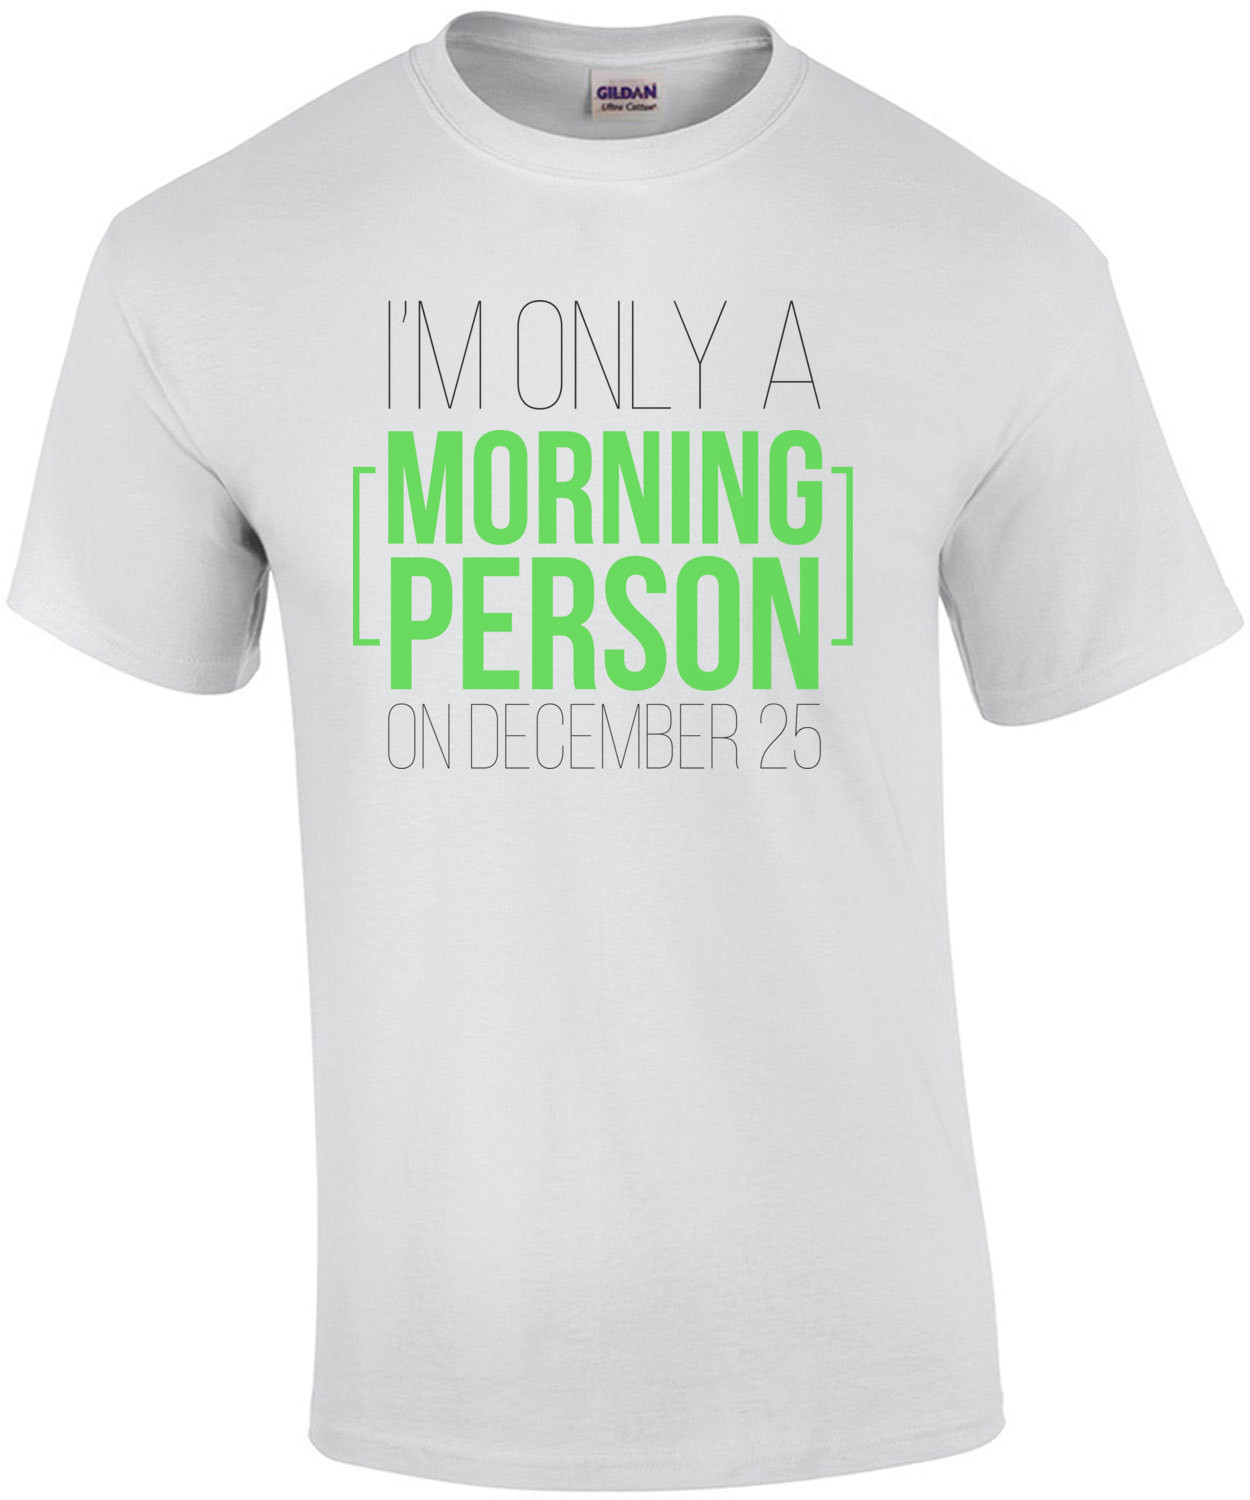 I'm only a morning person on December 25 - funny christmas t-shirt